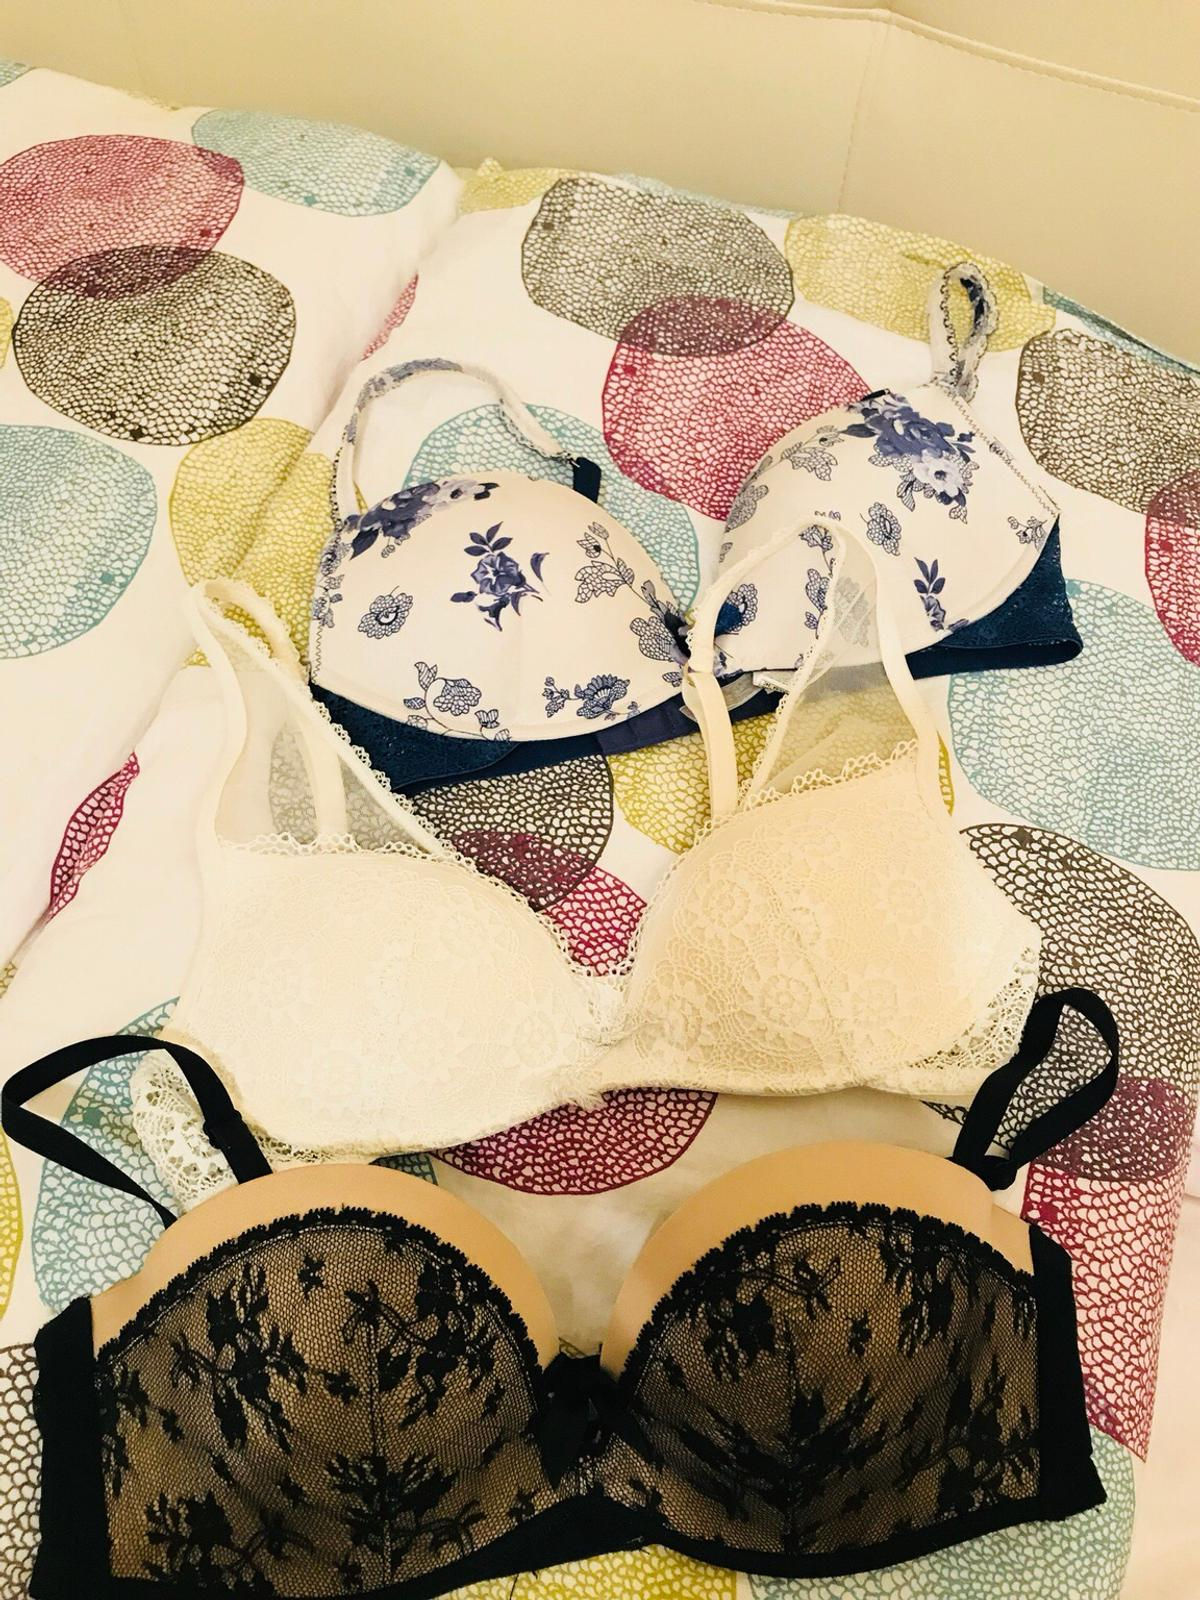 80fd946a961f Intimissimi Gioia Push up+Yamamay push pushUp in 00166 Roma for ...